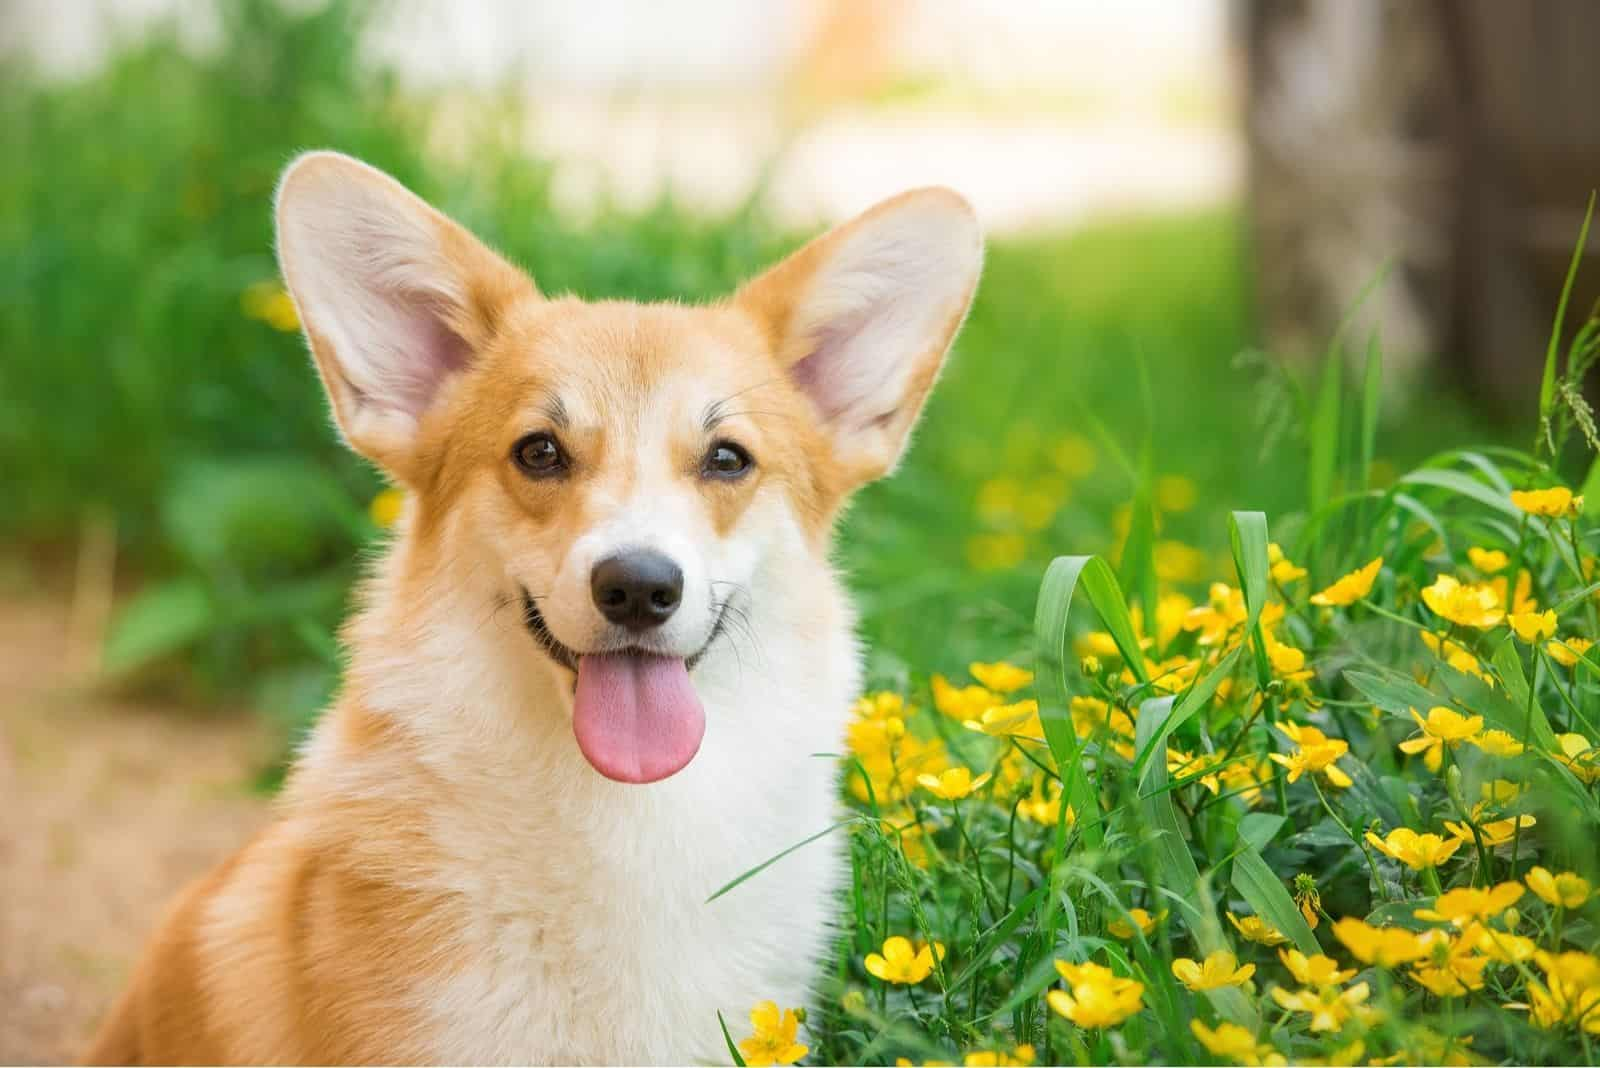 Welsh corgi pembroke portrait with tongue out and yellow flowers